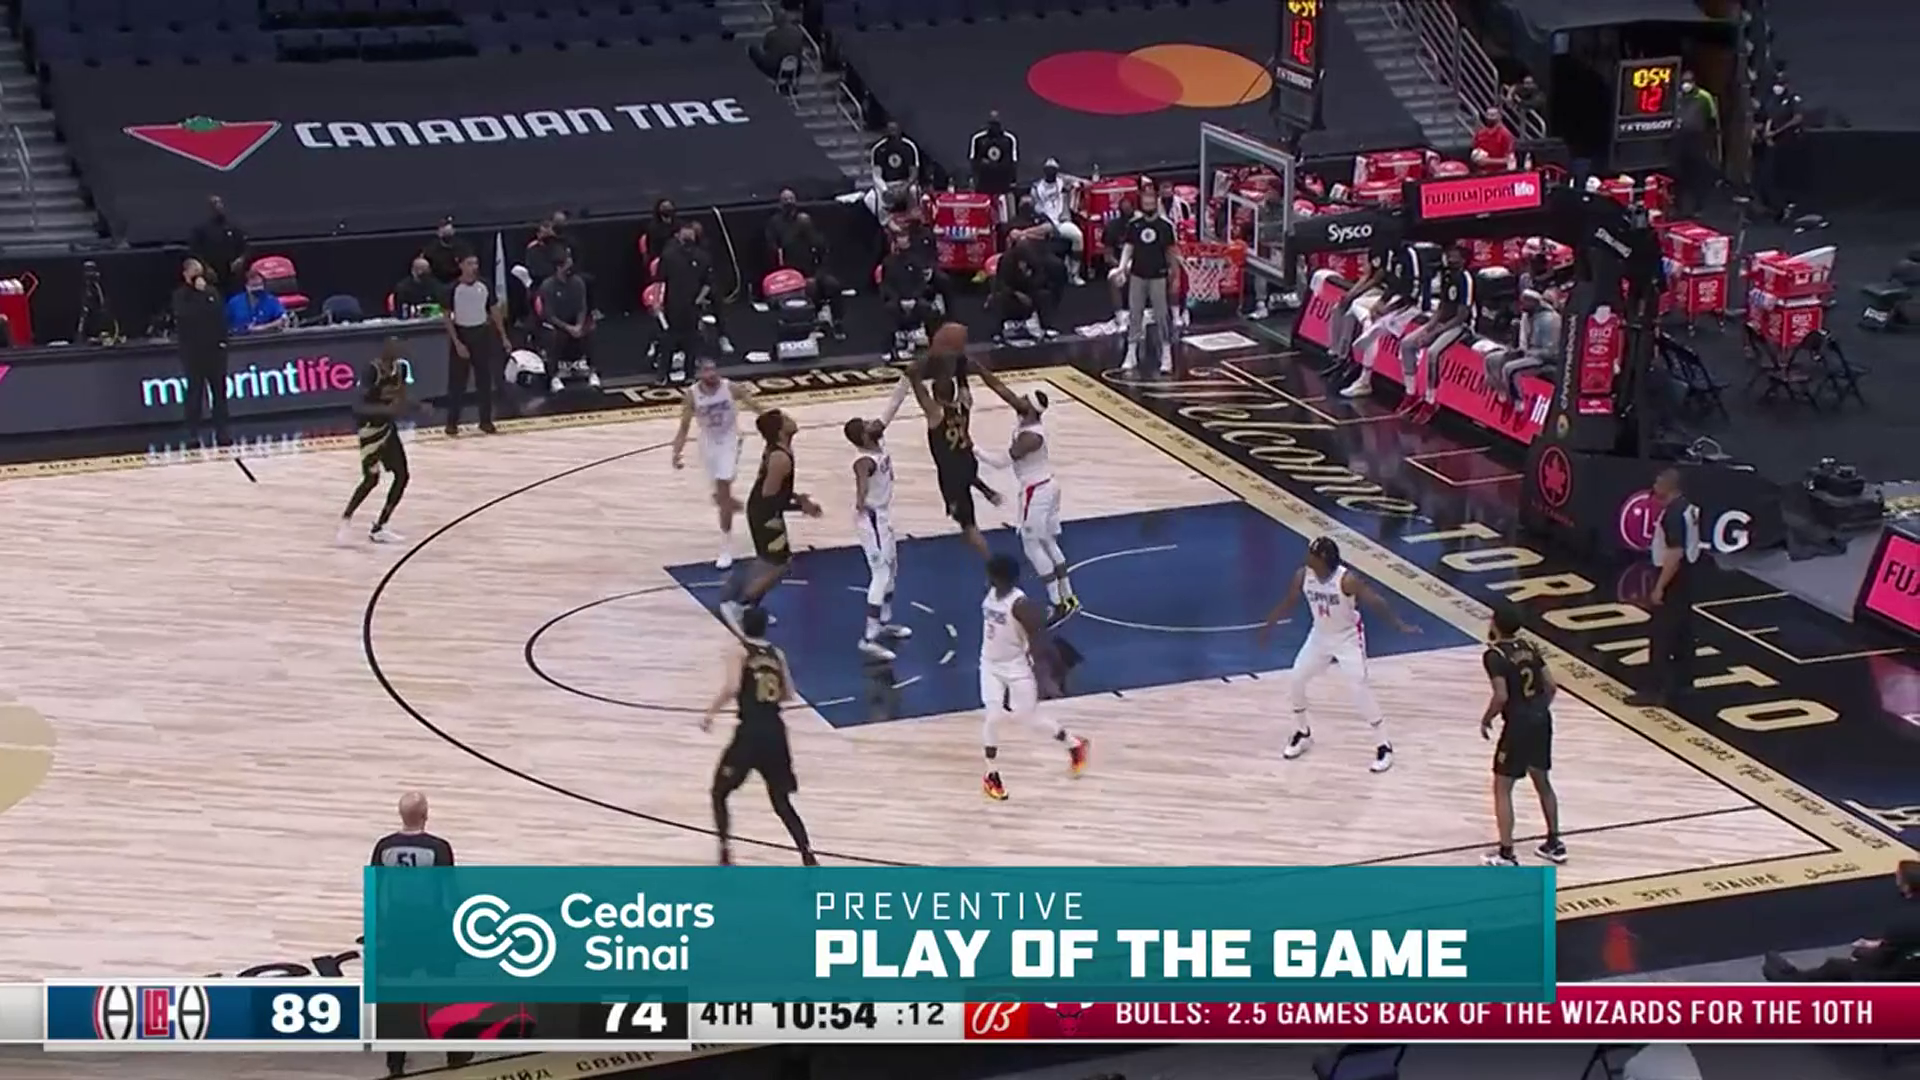 Cedars-Sinai Preventive Play of the Game | Clippers vs Raptors (5.11.21)